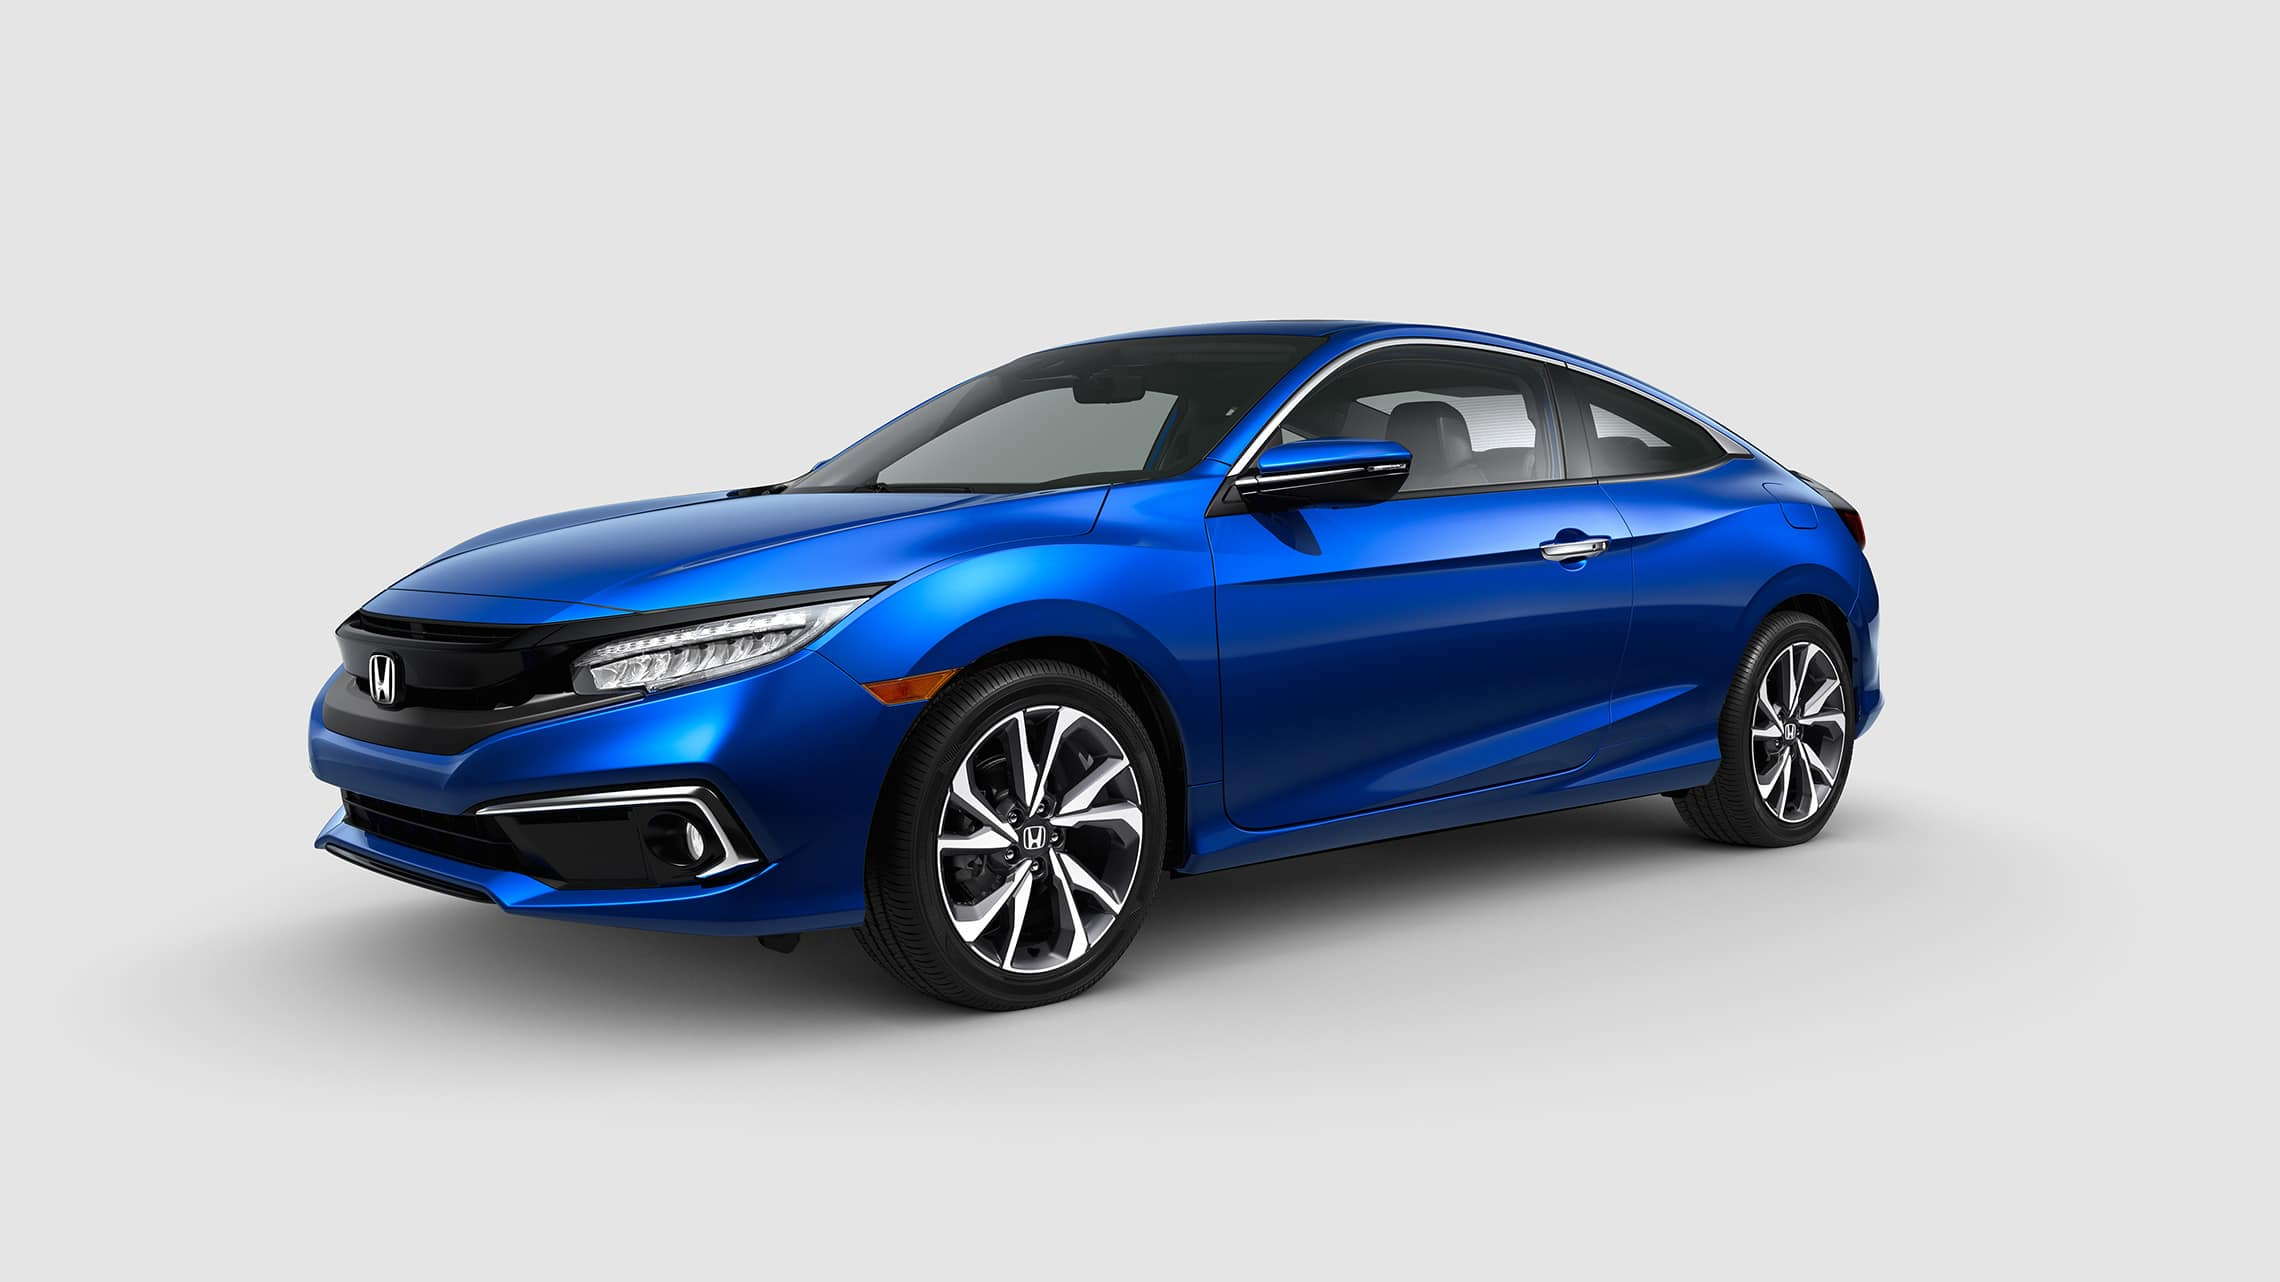 Front driver-side view of the 2020 Honda Civic Touring Coupe in Aegean Blue Metallic.